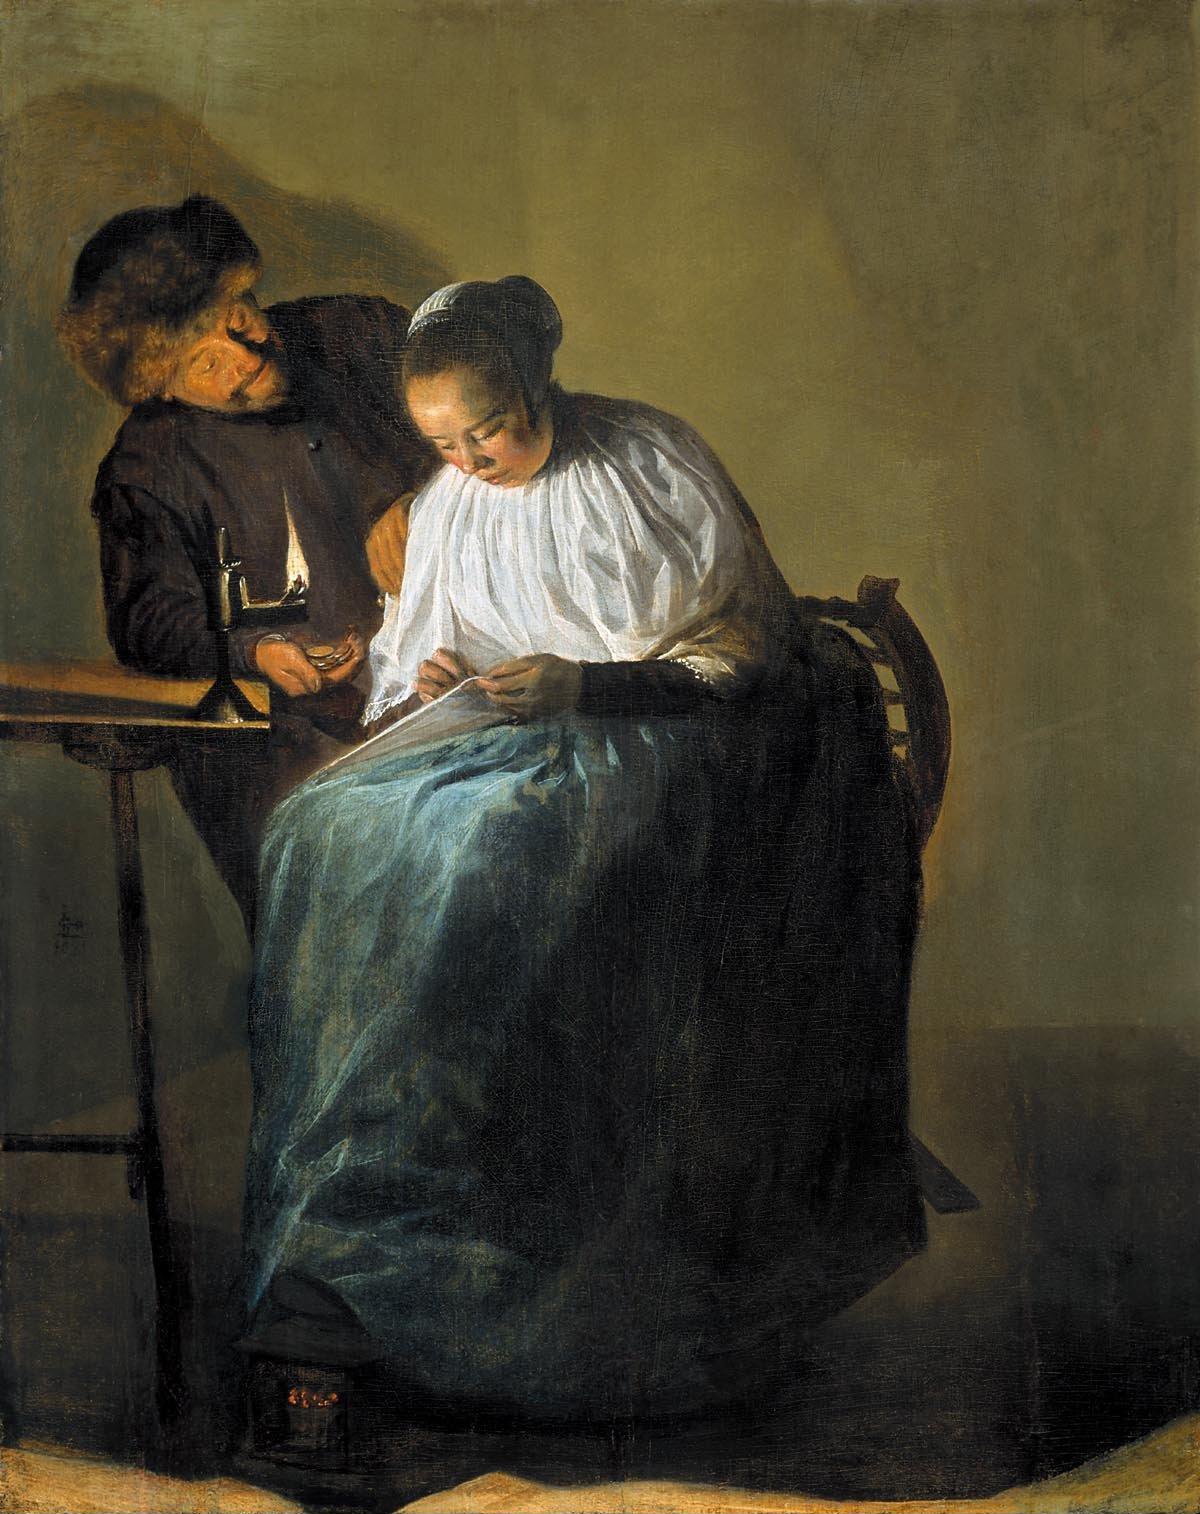 Judith Leyster, The Proposition. 1631